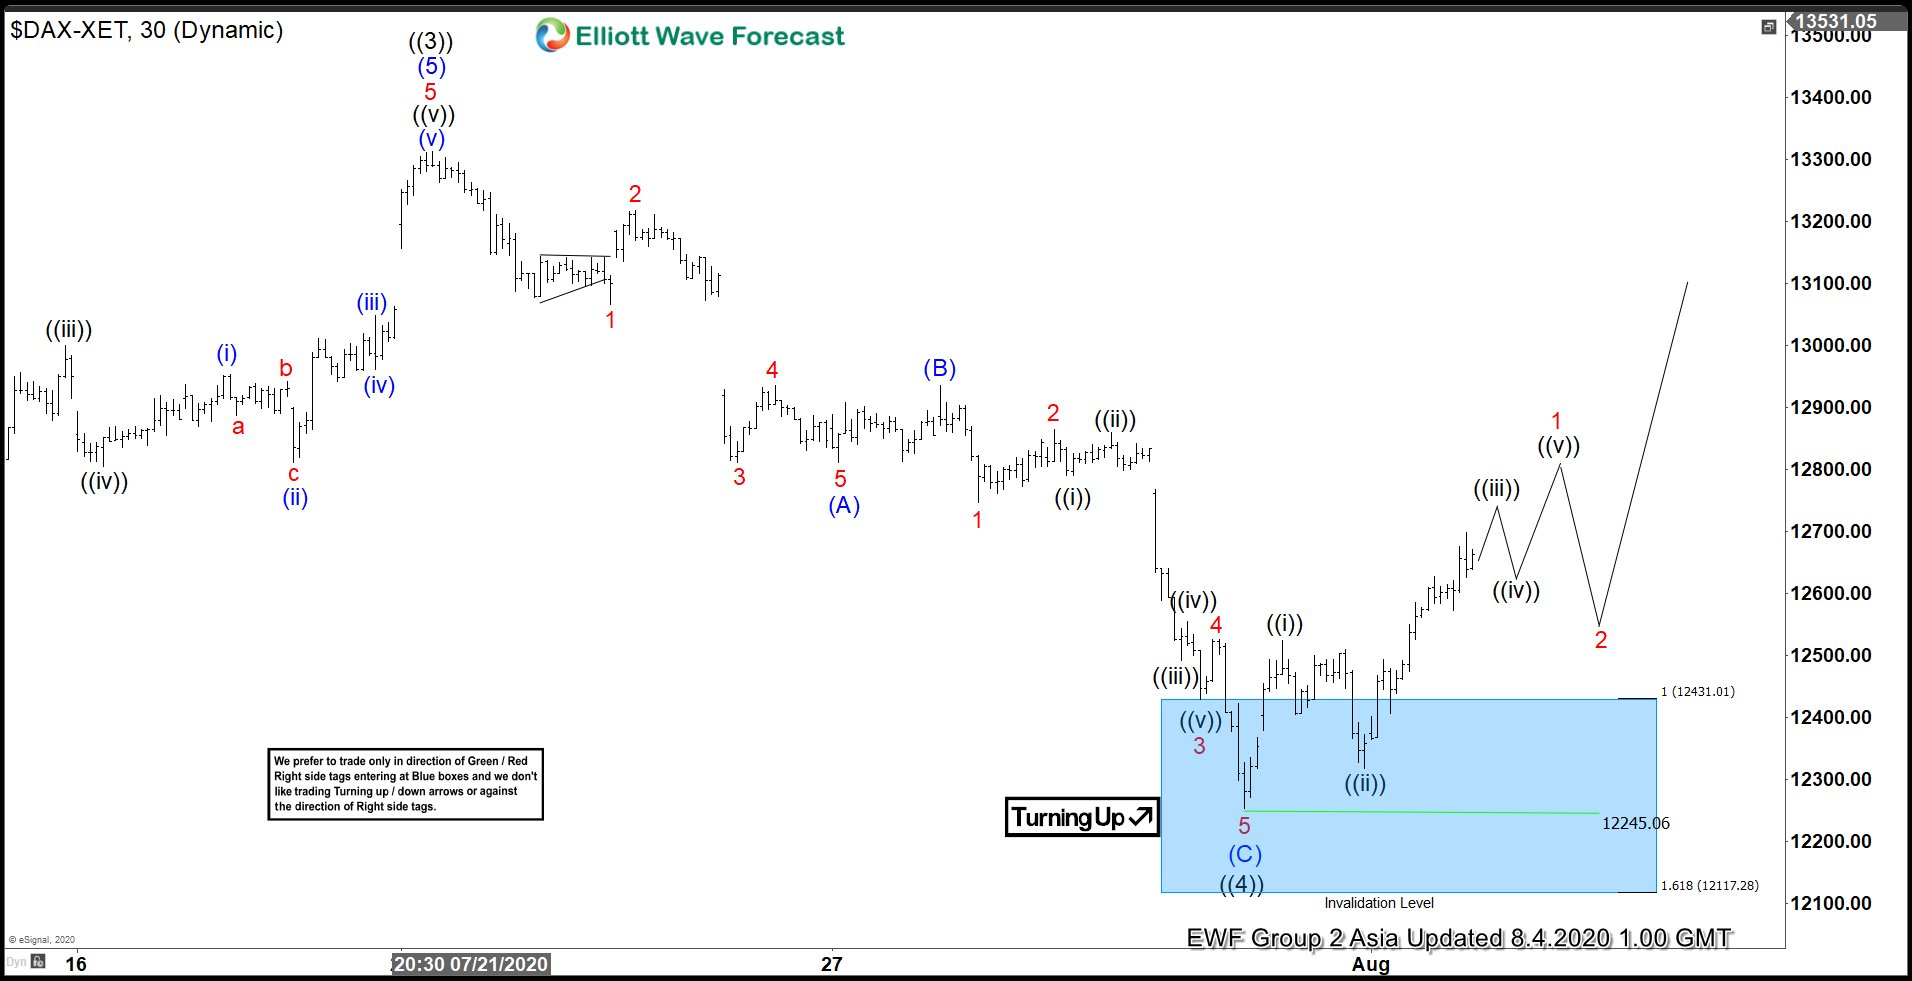 Elliott Wave View: DAX Finds Support after Pullback